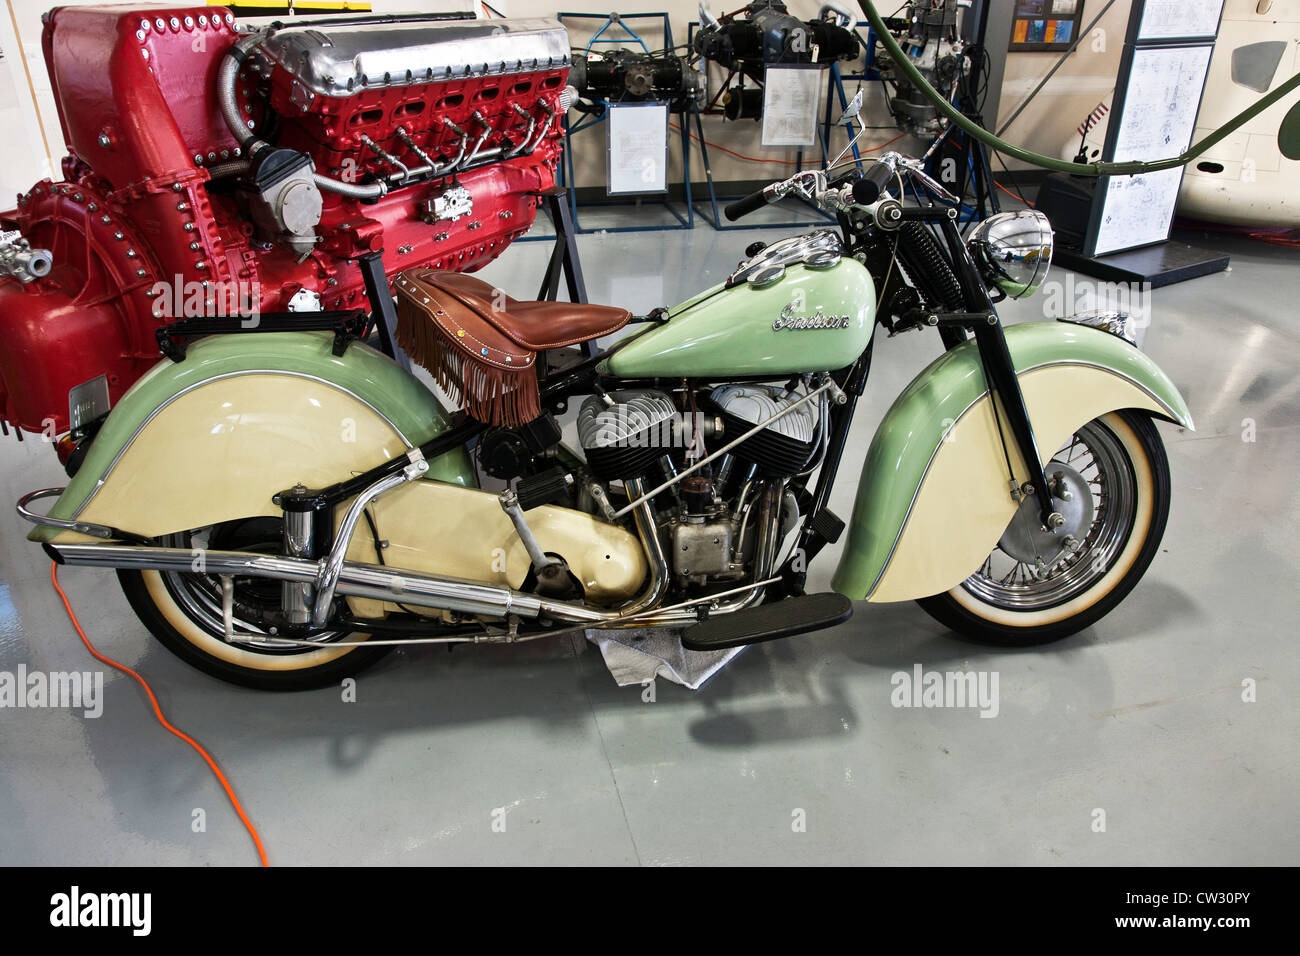 Indian Motorcycle Vintage >> two tone cream & green vintage 1940's Indian motorcycle on display at Stock Photo - Alamy